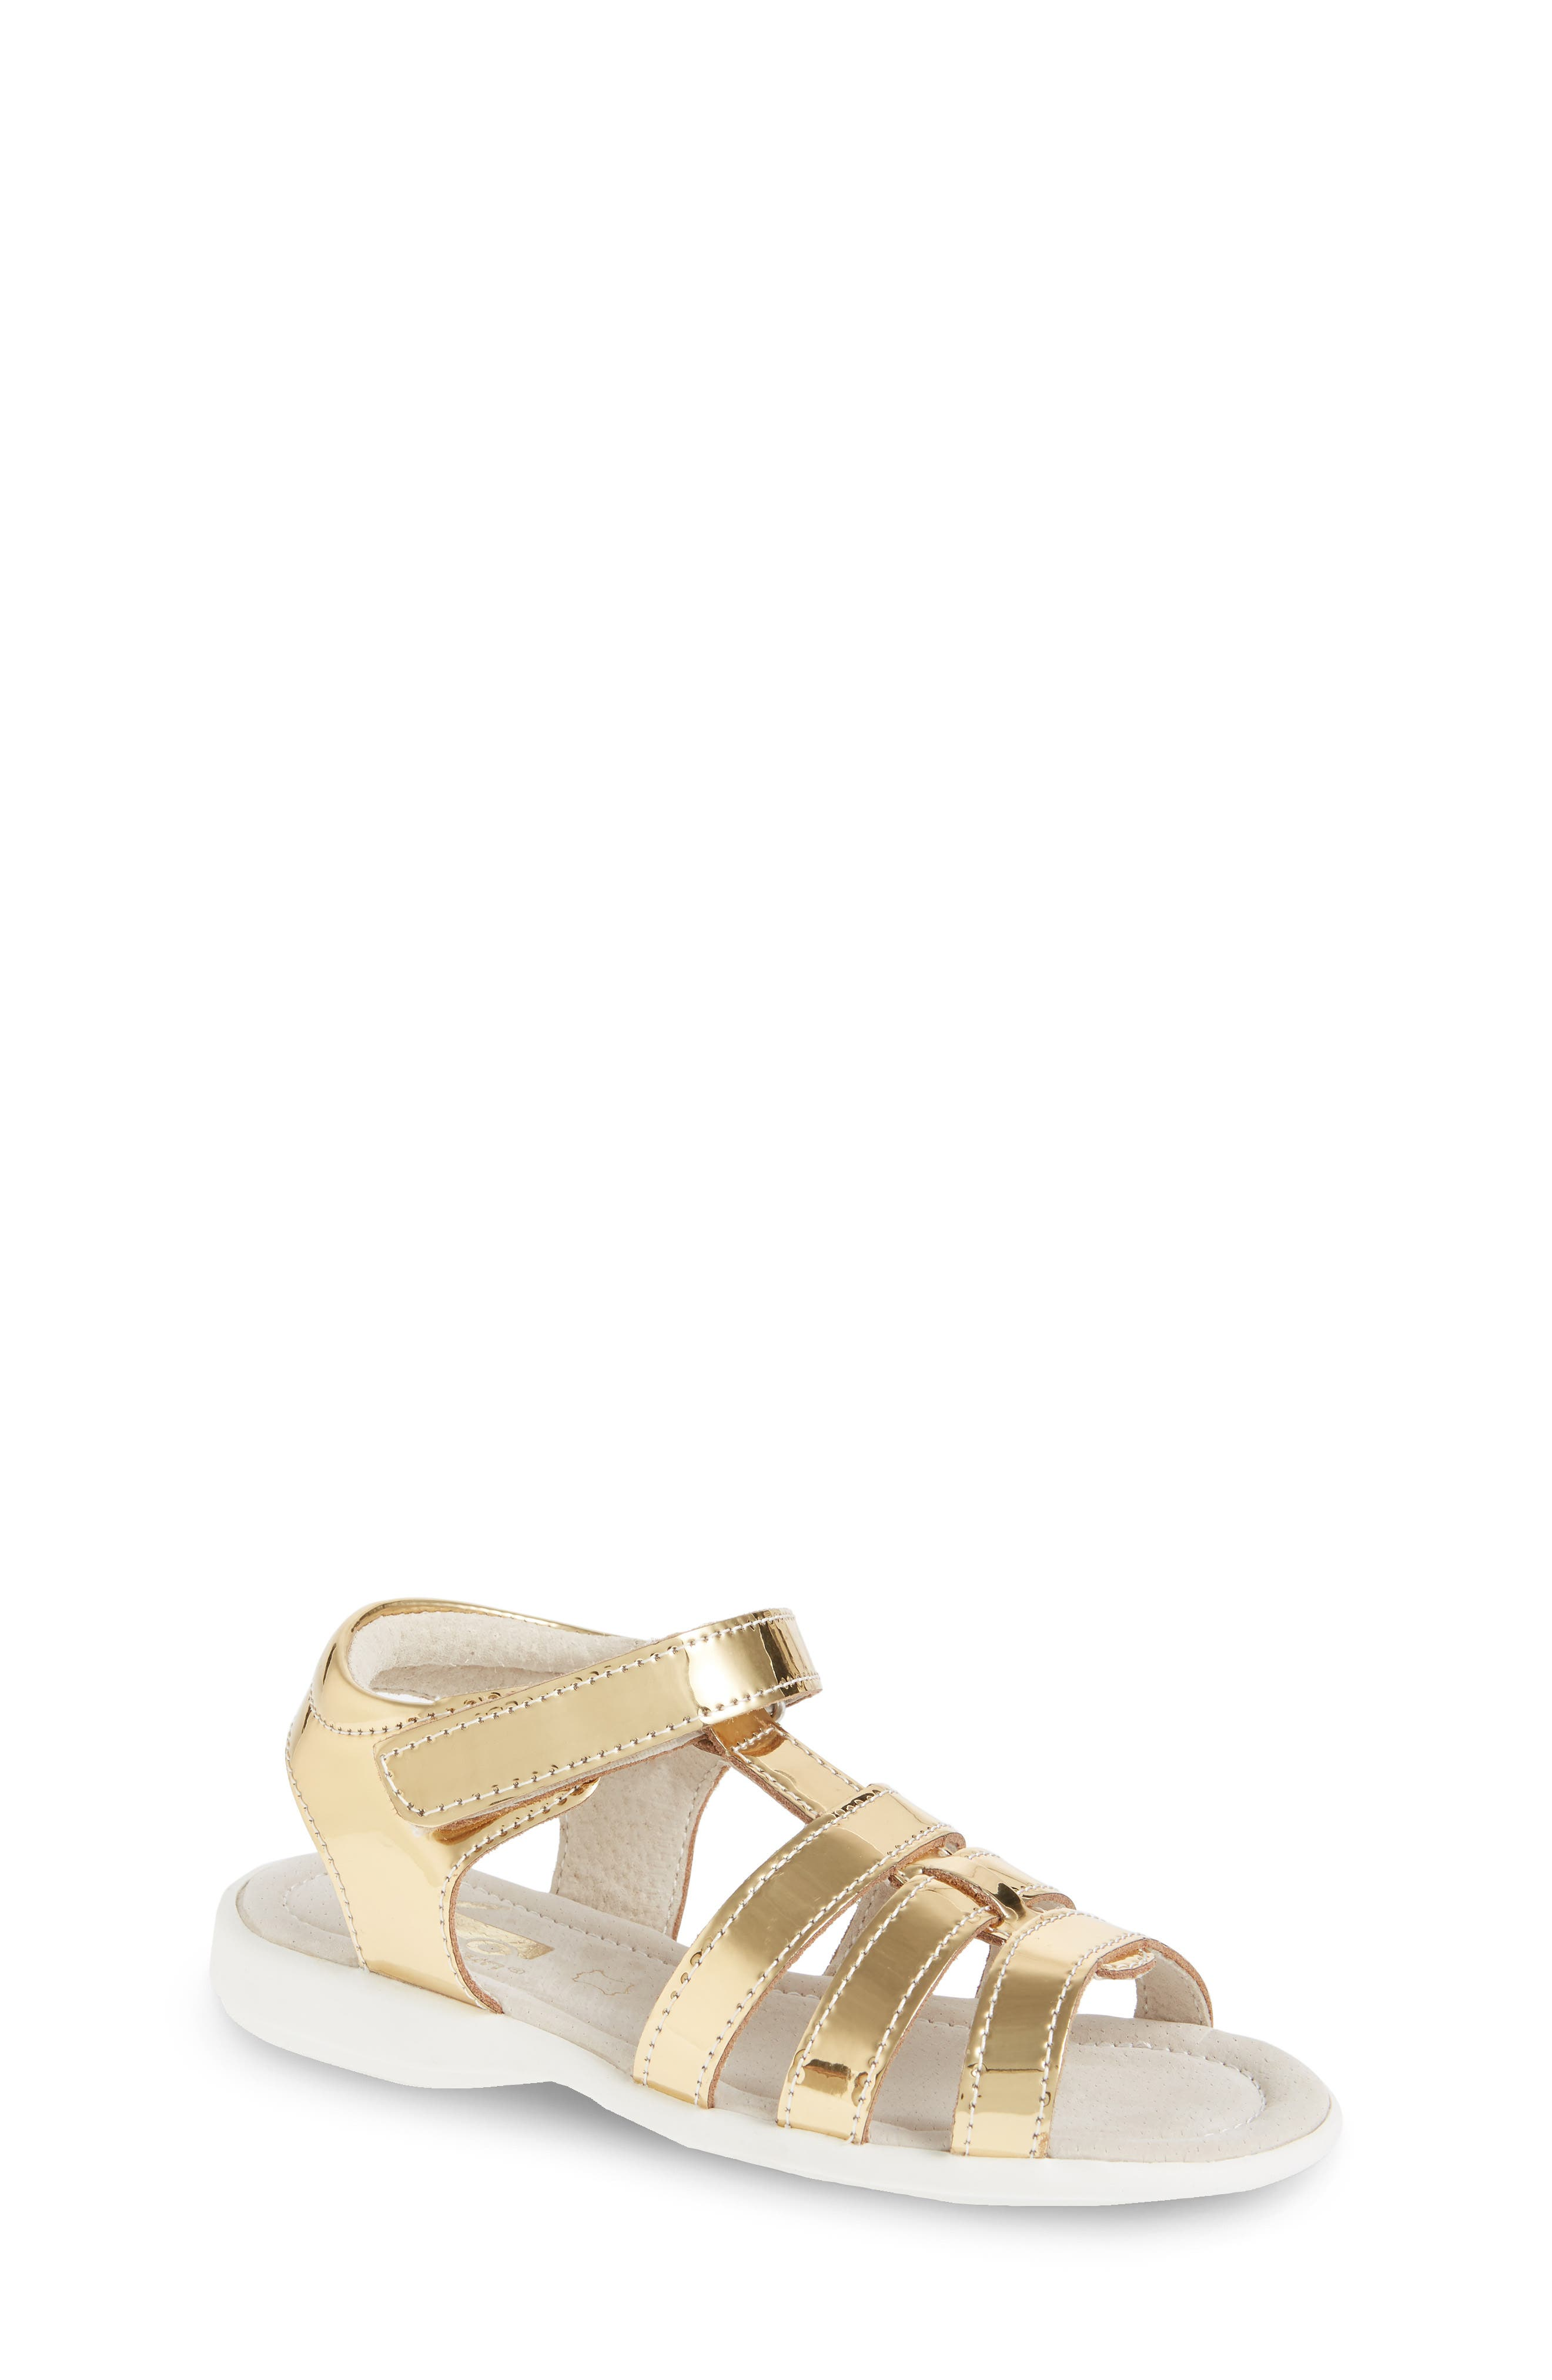 Fe Metallic Fisherman Sandal,                             Main thumbnail 1, color,                             Gold